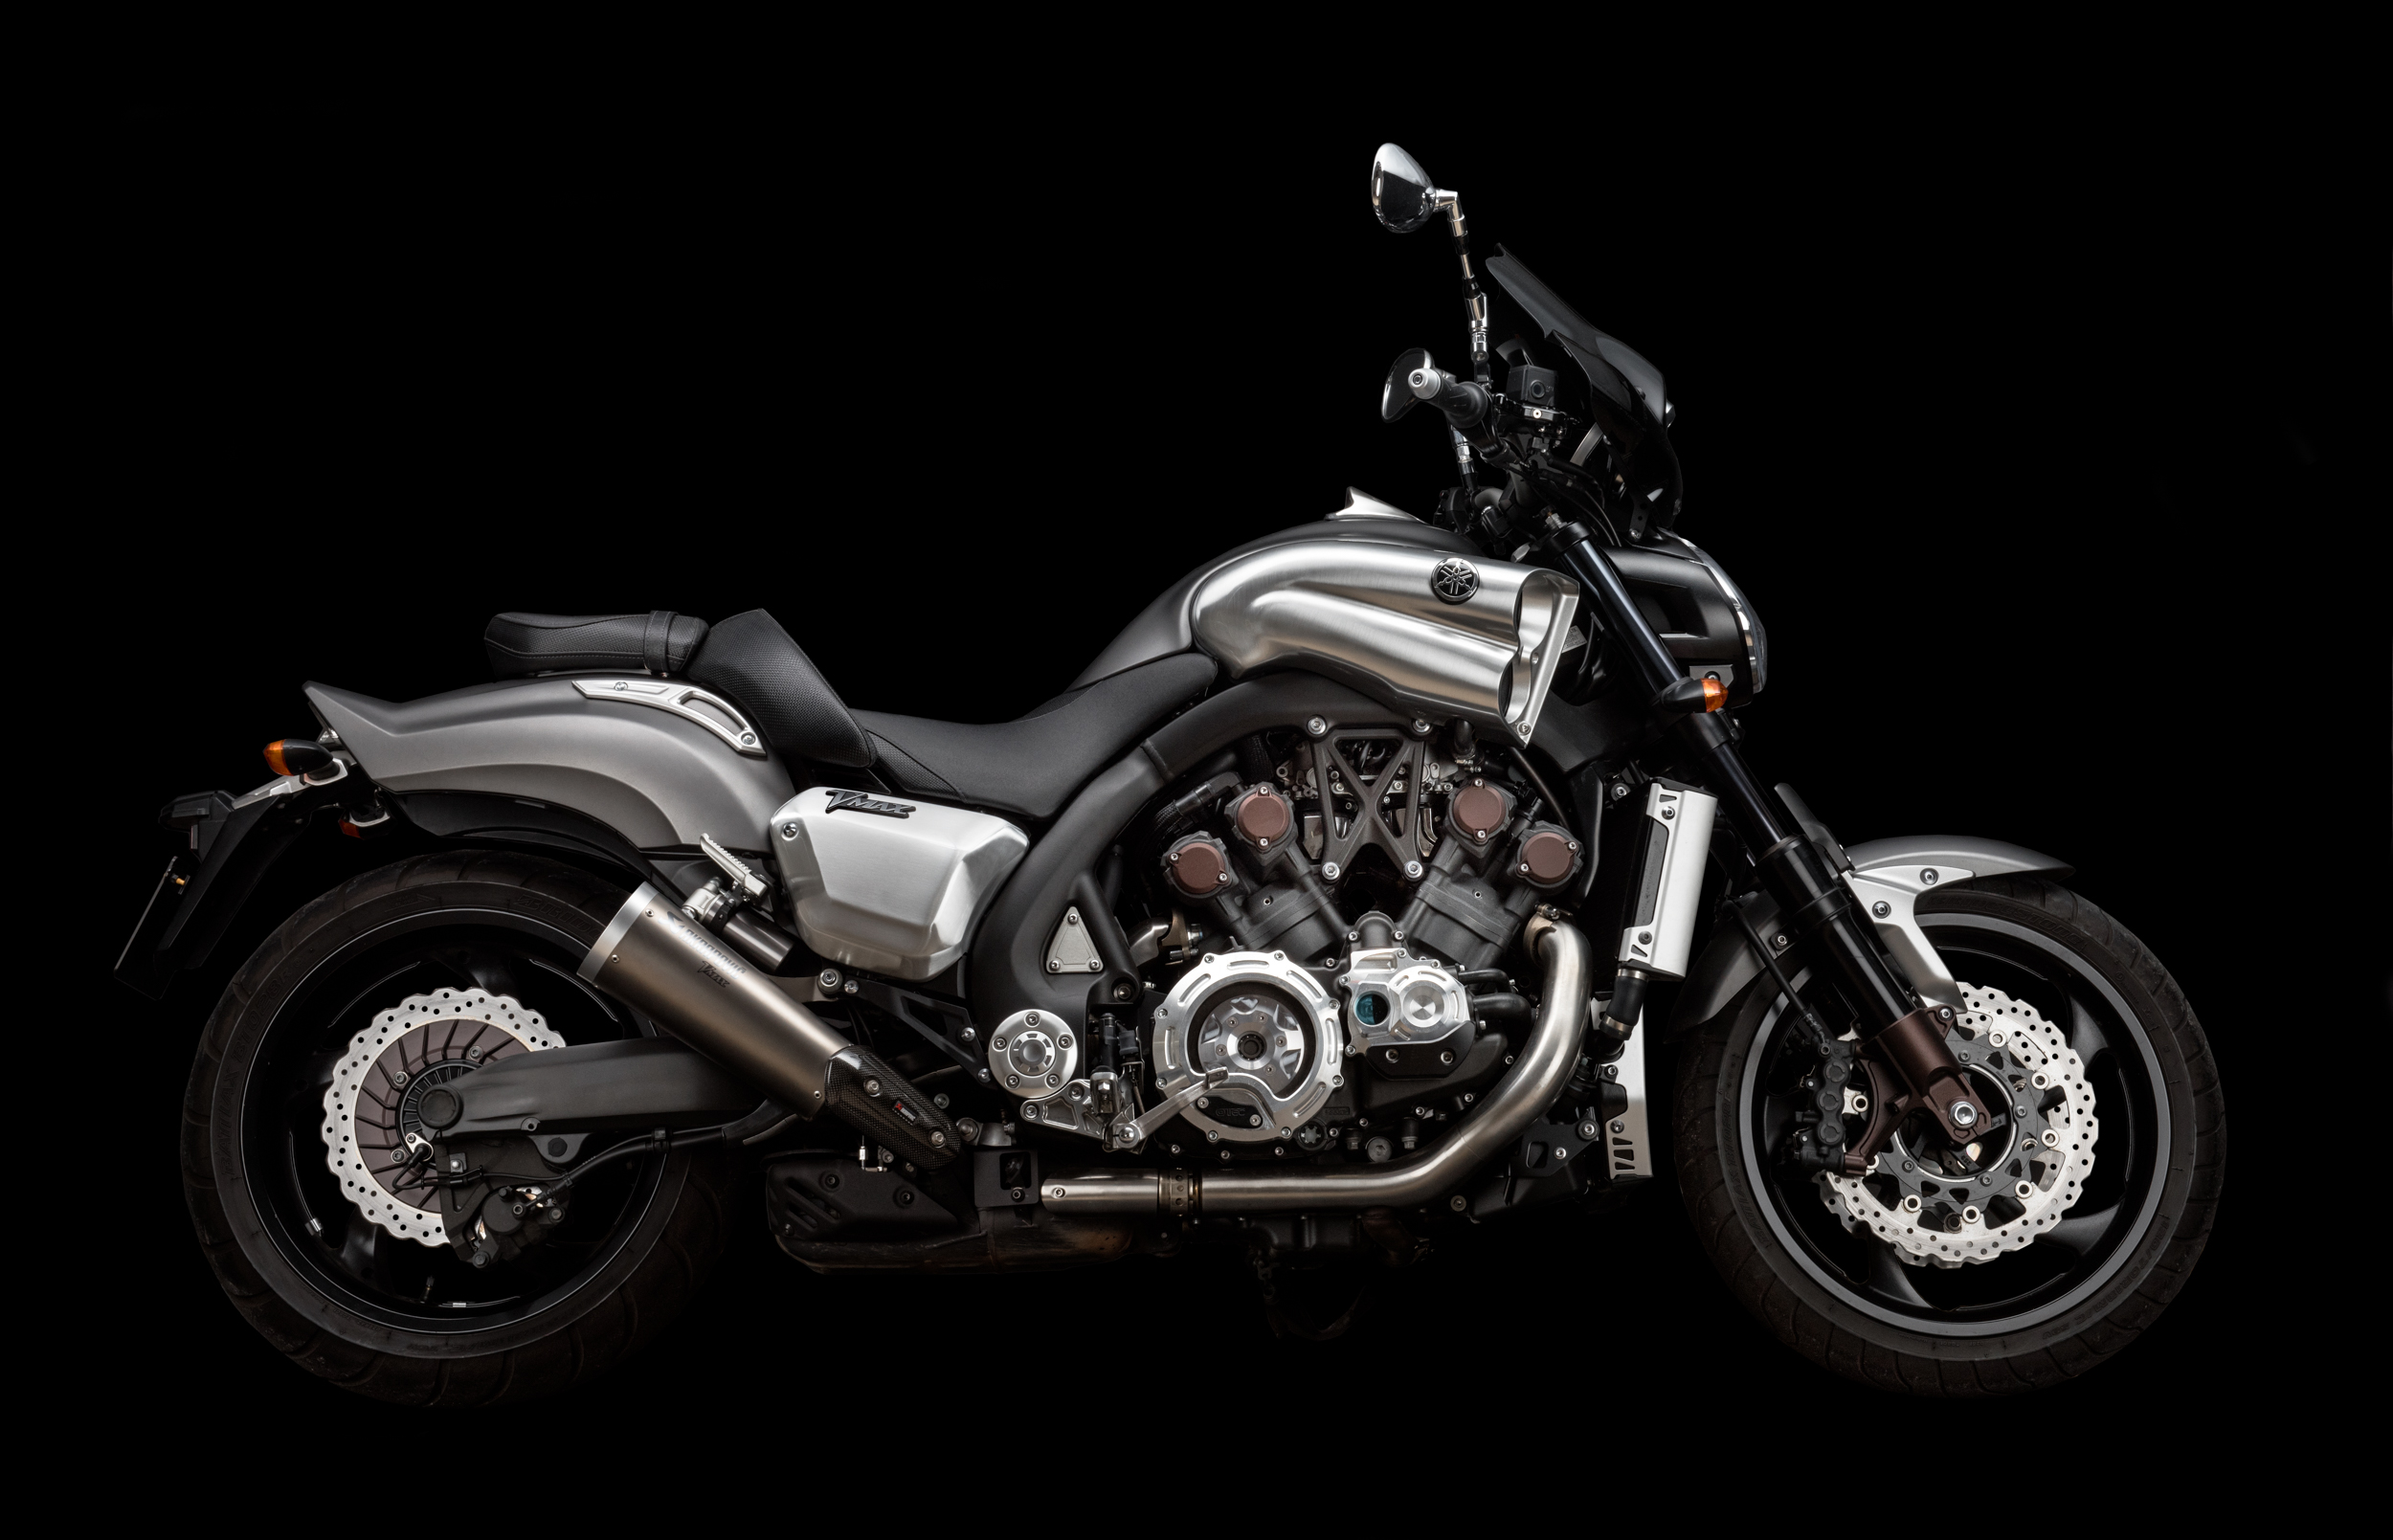 Yamaha VMax, Courtesy of JSC Services